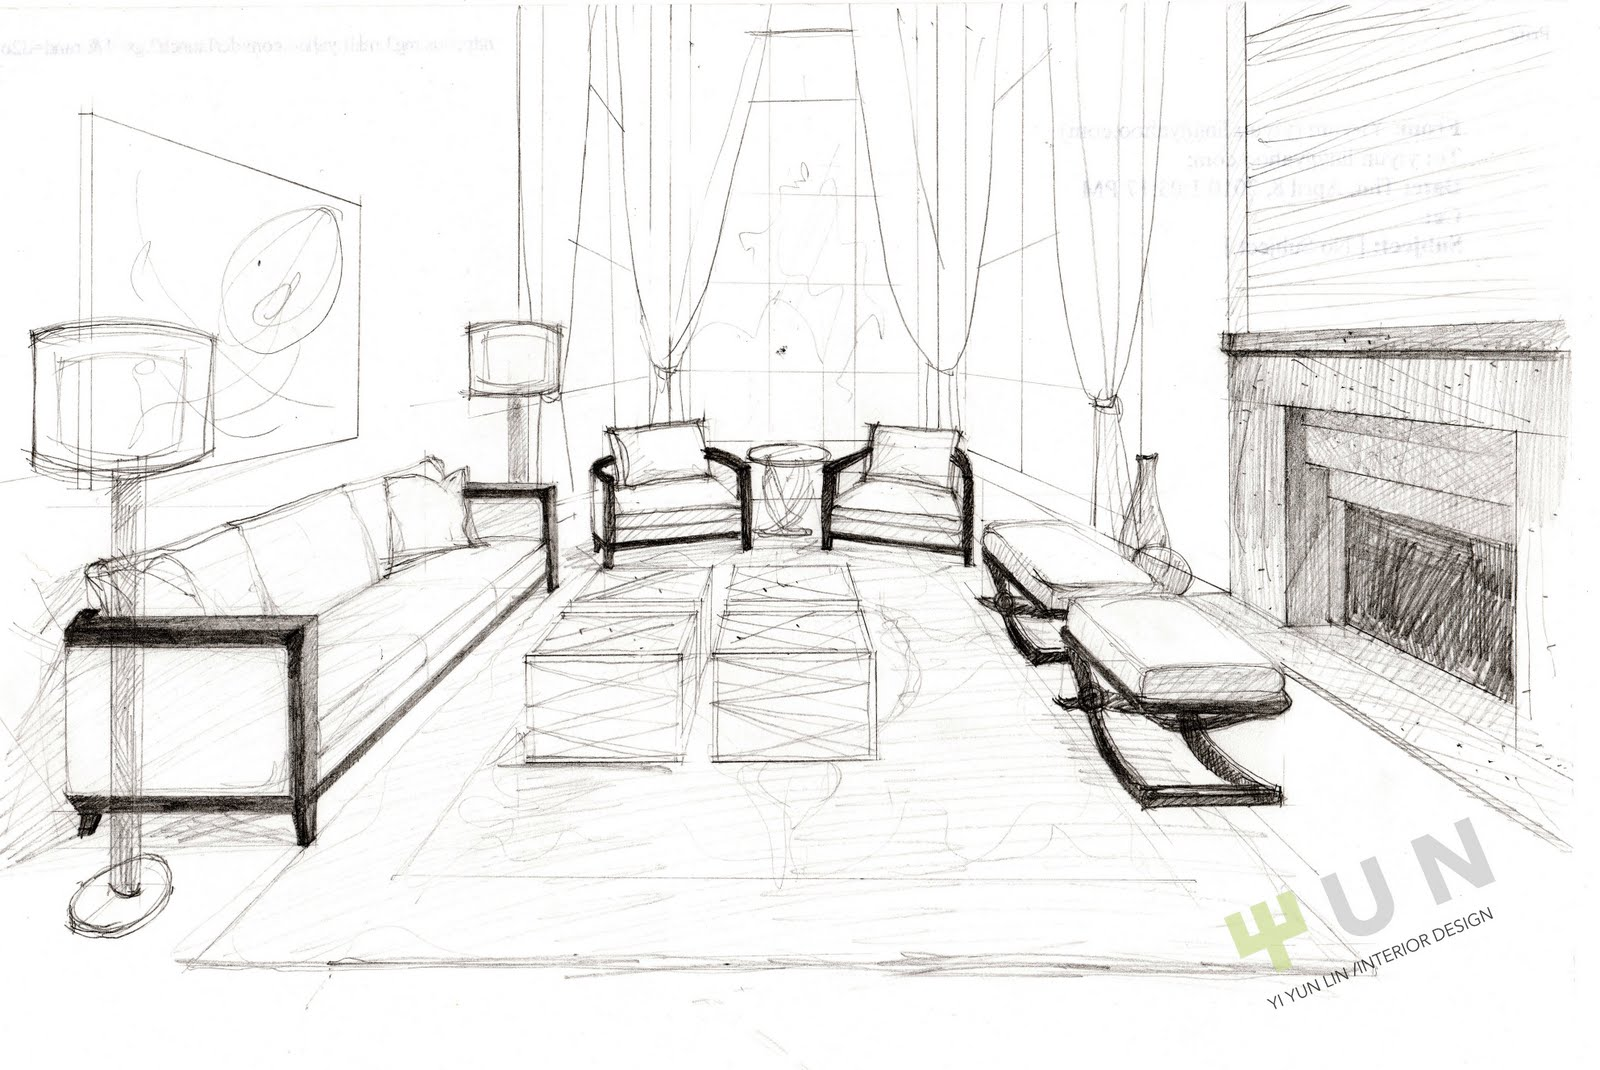 Interior design sketches wallpress 1080p hd desktop for Interior designs sketches